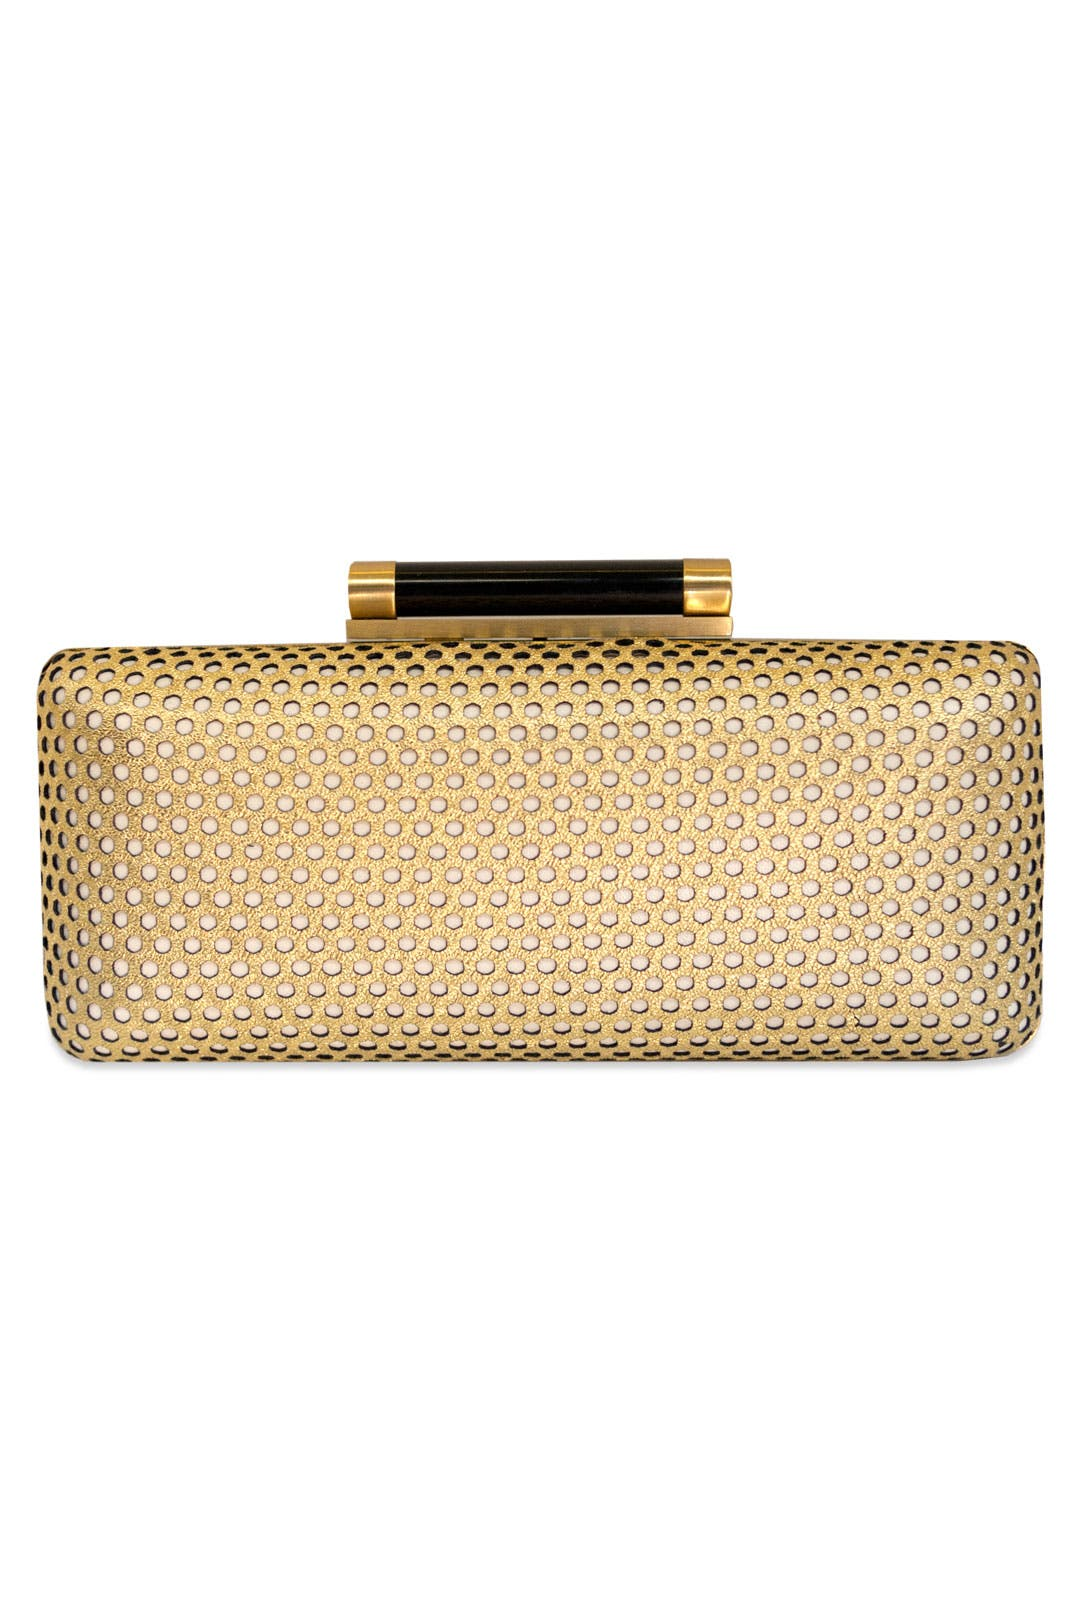 Gold Boombox Clutch by Diane von Furstenberg Handbags